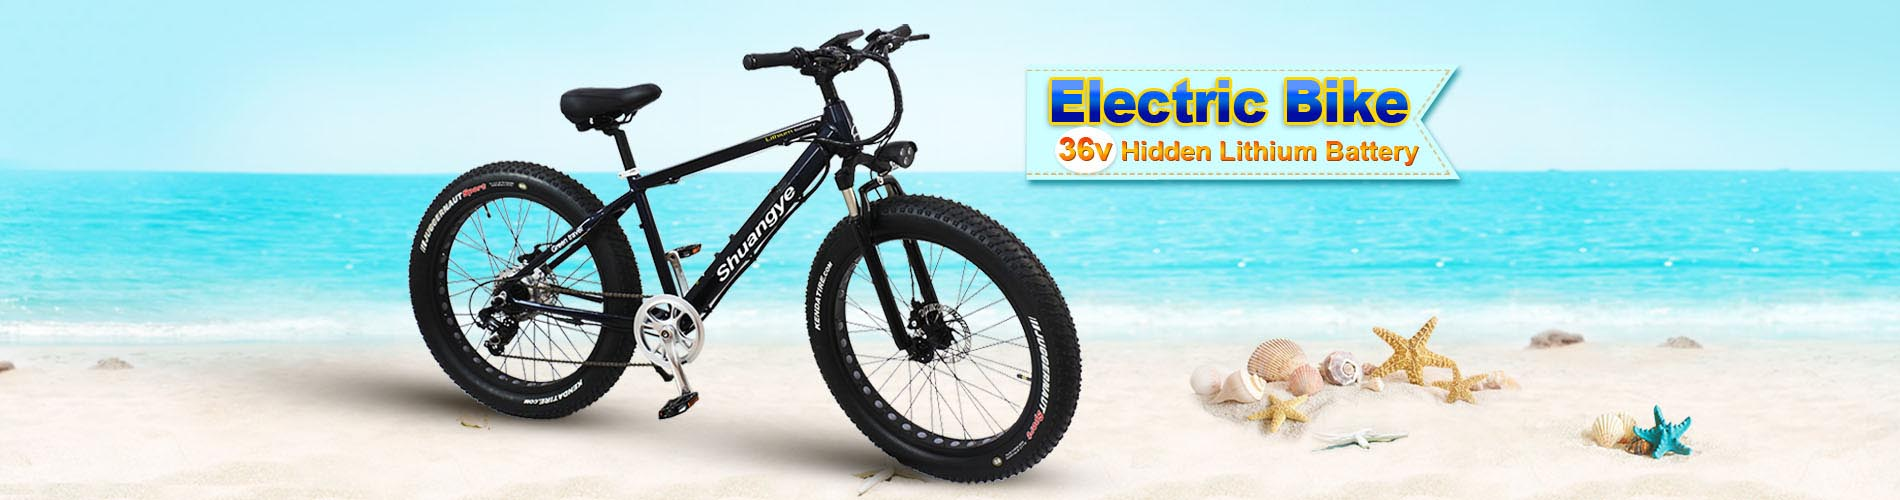 250W rear bafang motor electric bicycle A5AH26